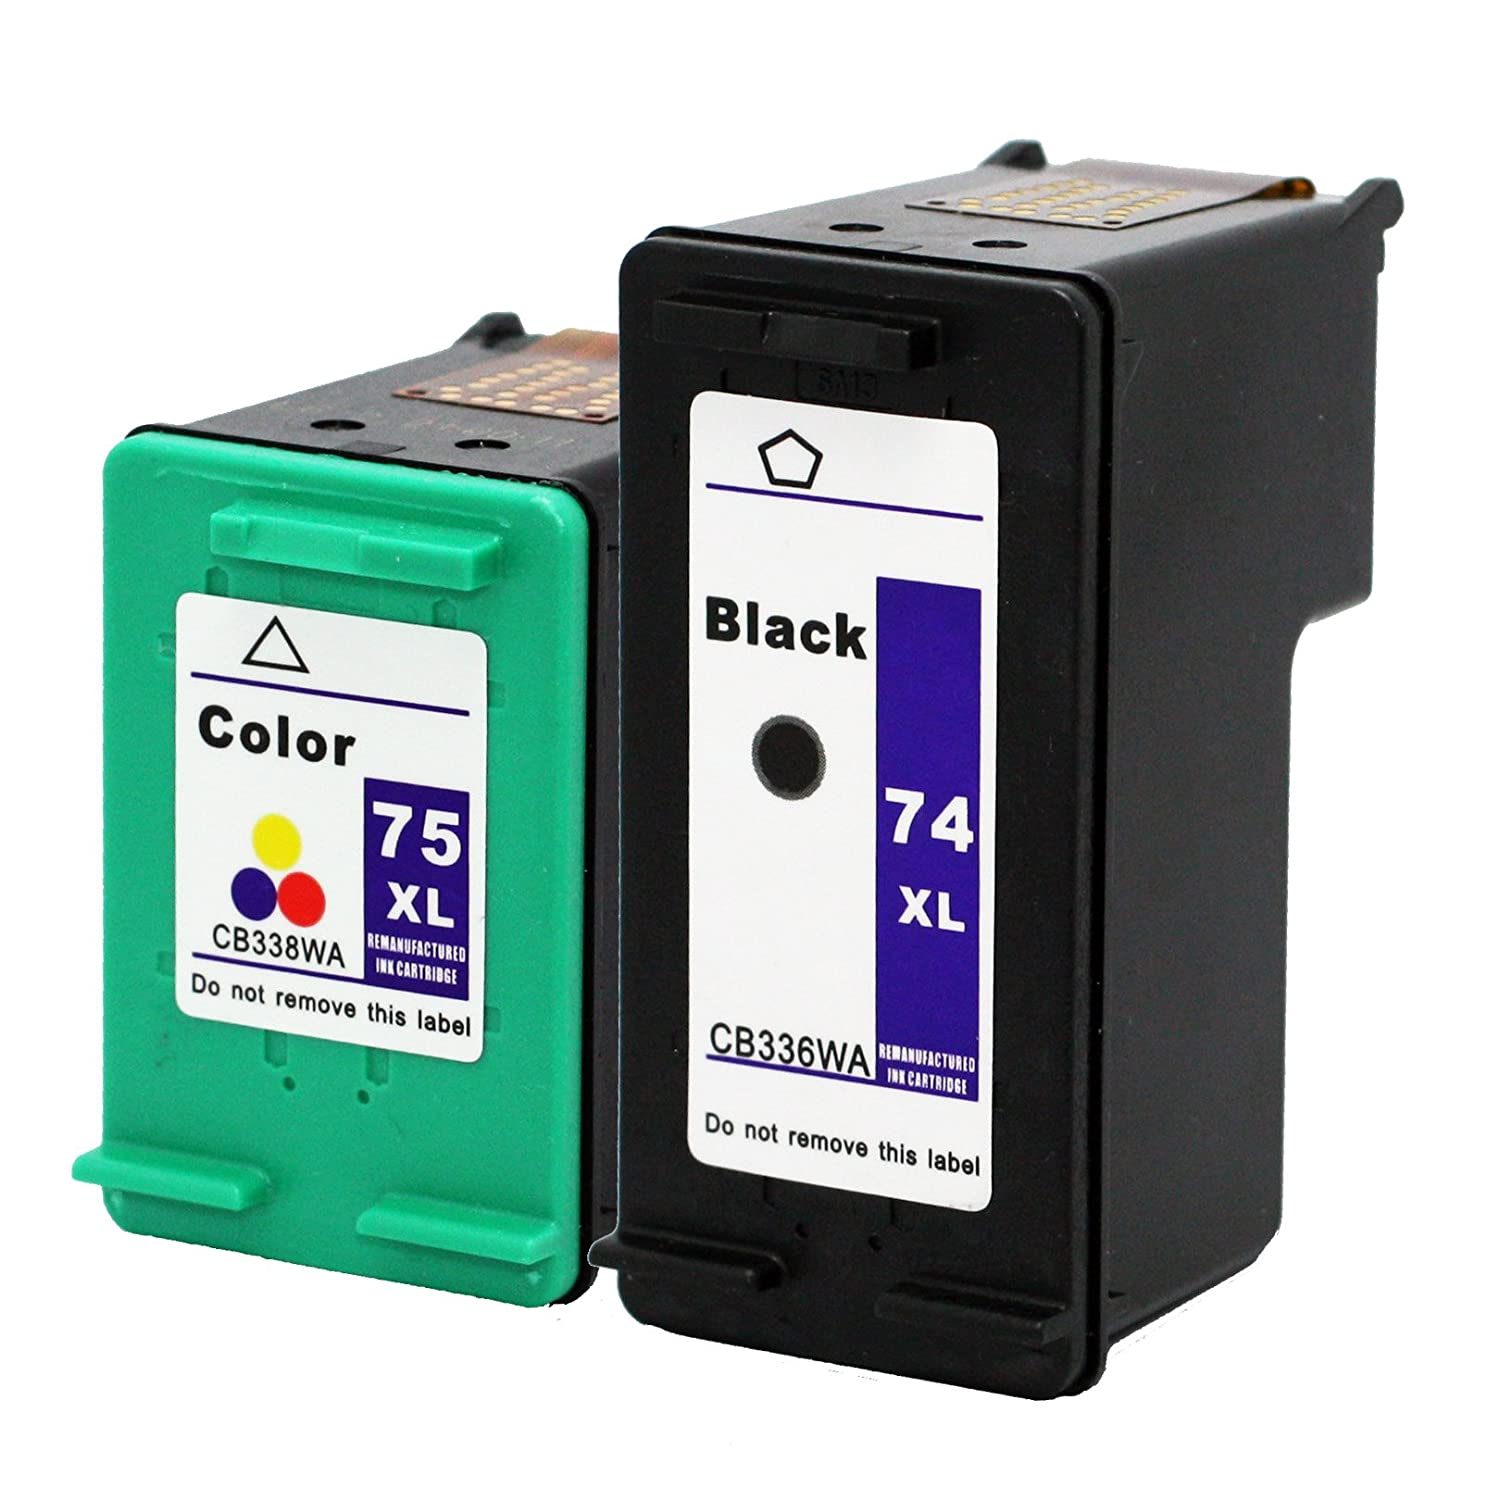 Color printing bu - Amazon Com Remanufactured Ink Cartridge Replacement For Hp 74xl 75xl 1 Black 1 Color 2 Pack Office Products